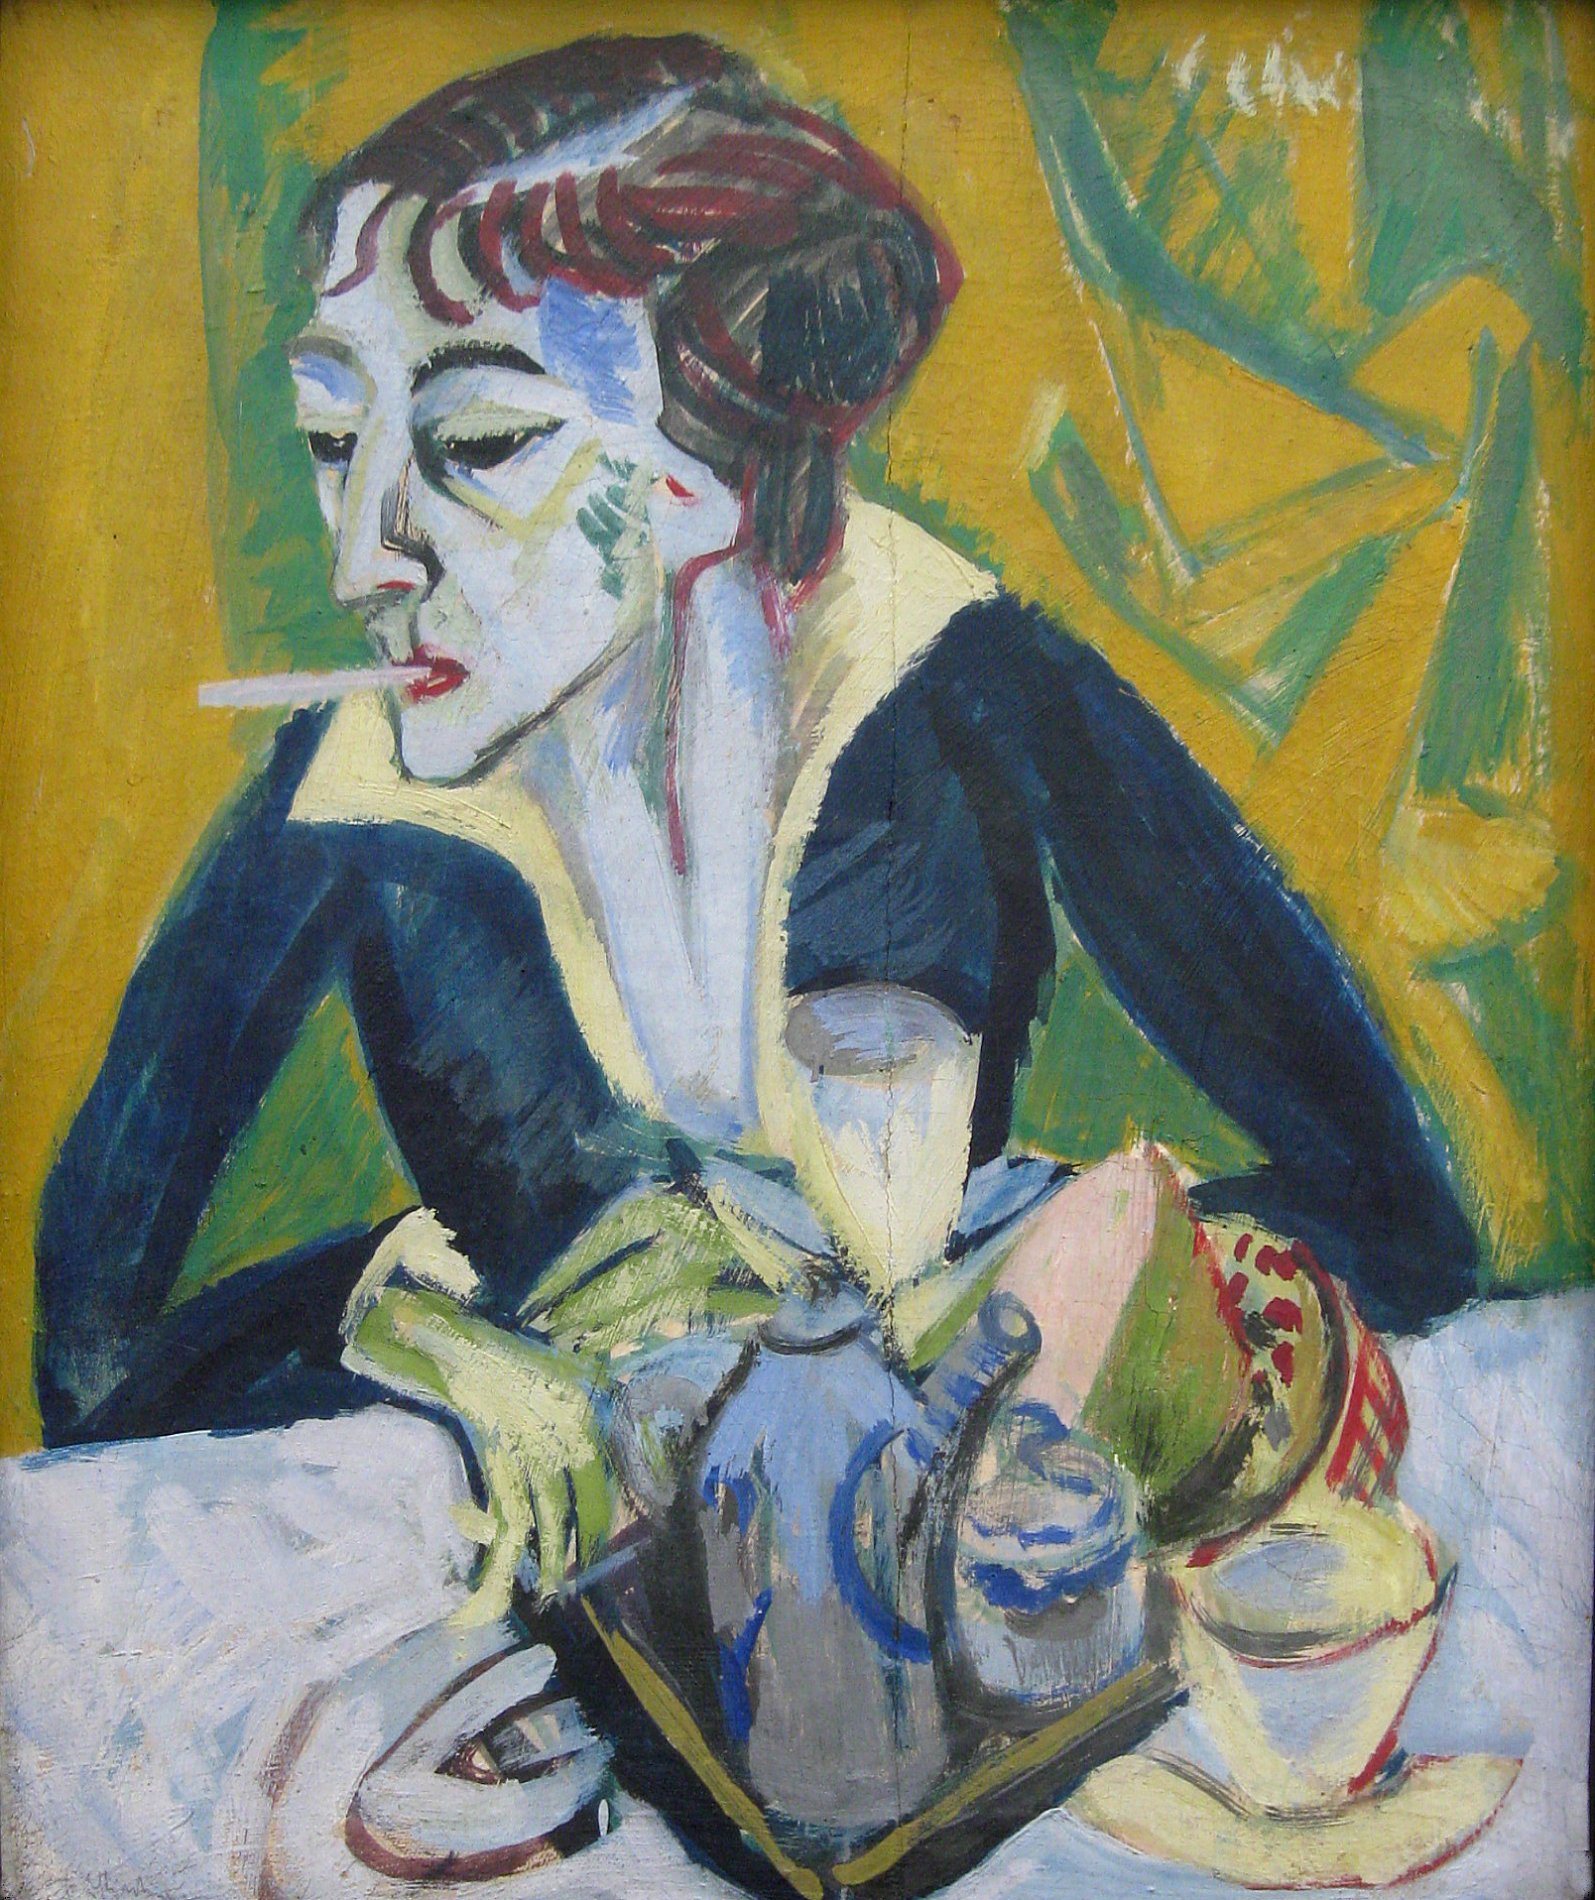 an analysis of german expressionism and surrealism